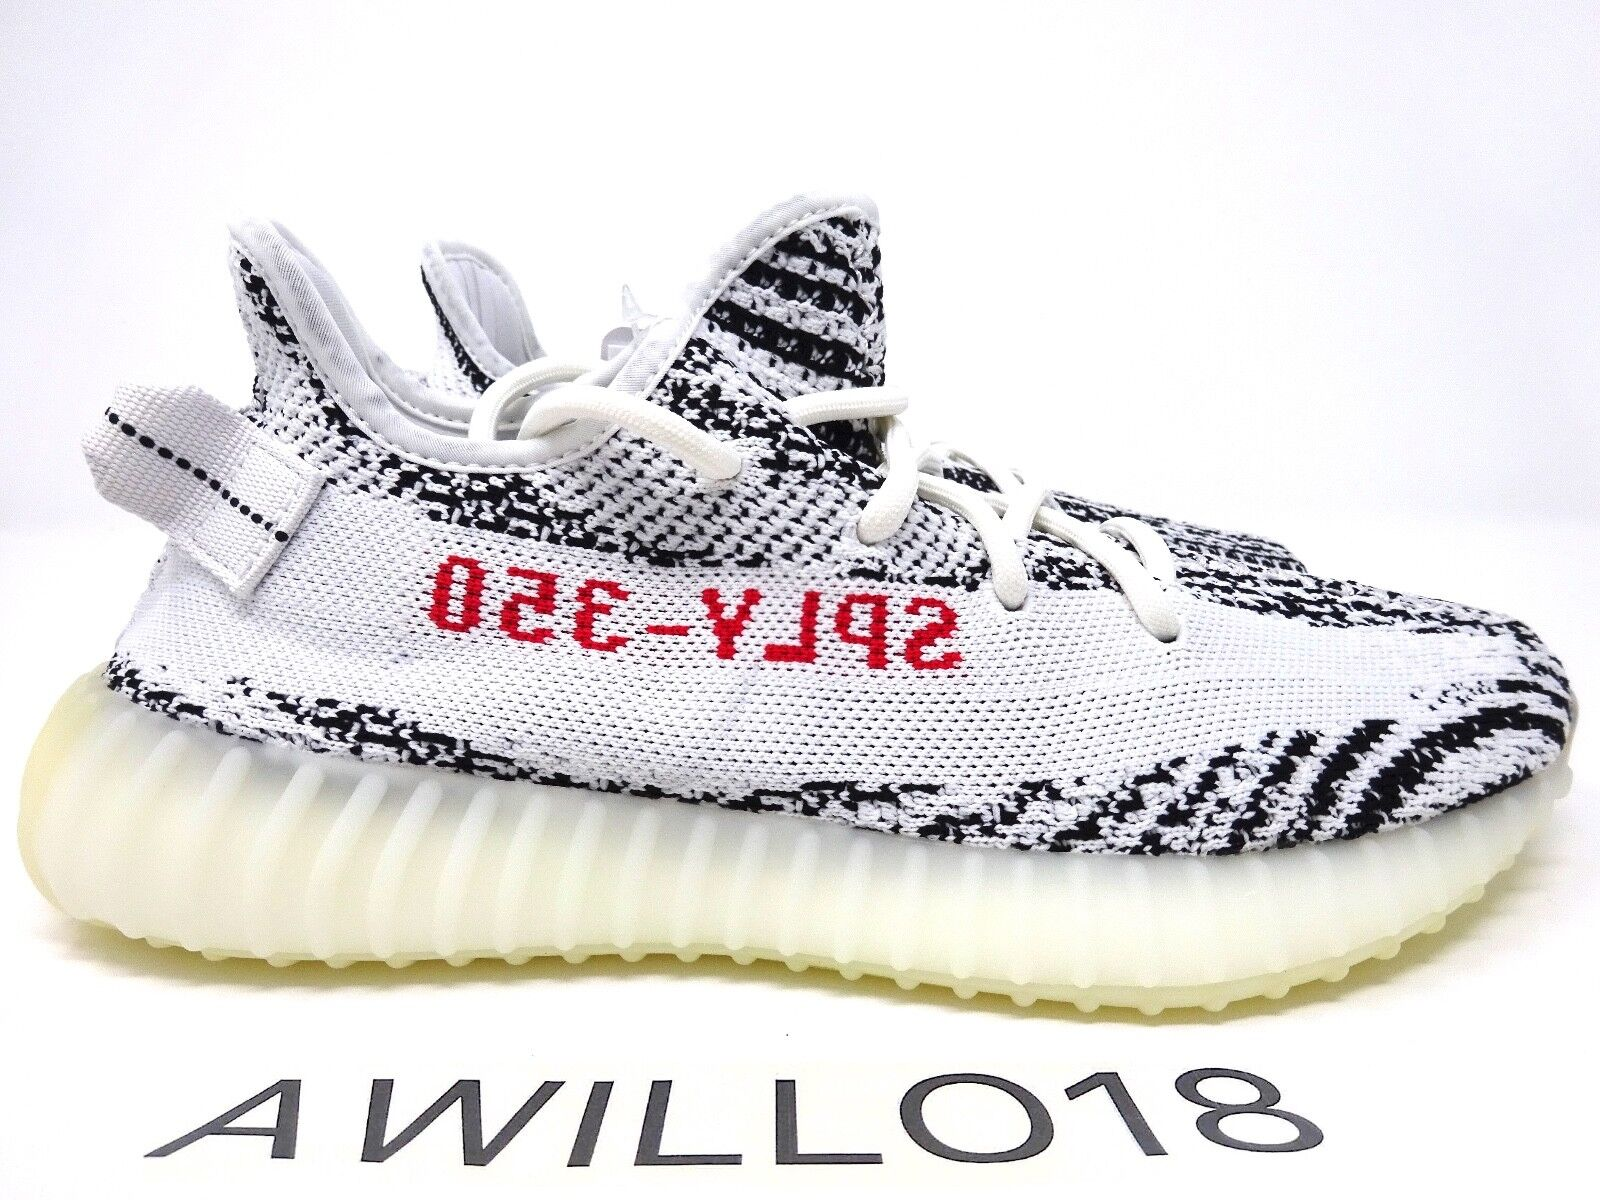 70d5ae20560 adidas Yeezy Boost 350 Zebra V2 Size 7.5 UK US 8 Kanye West 100 ...